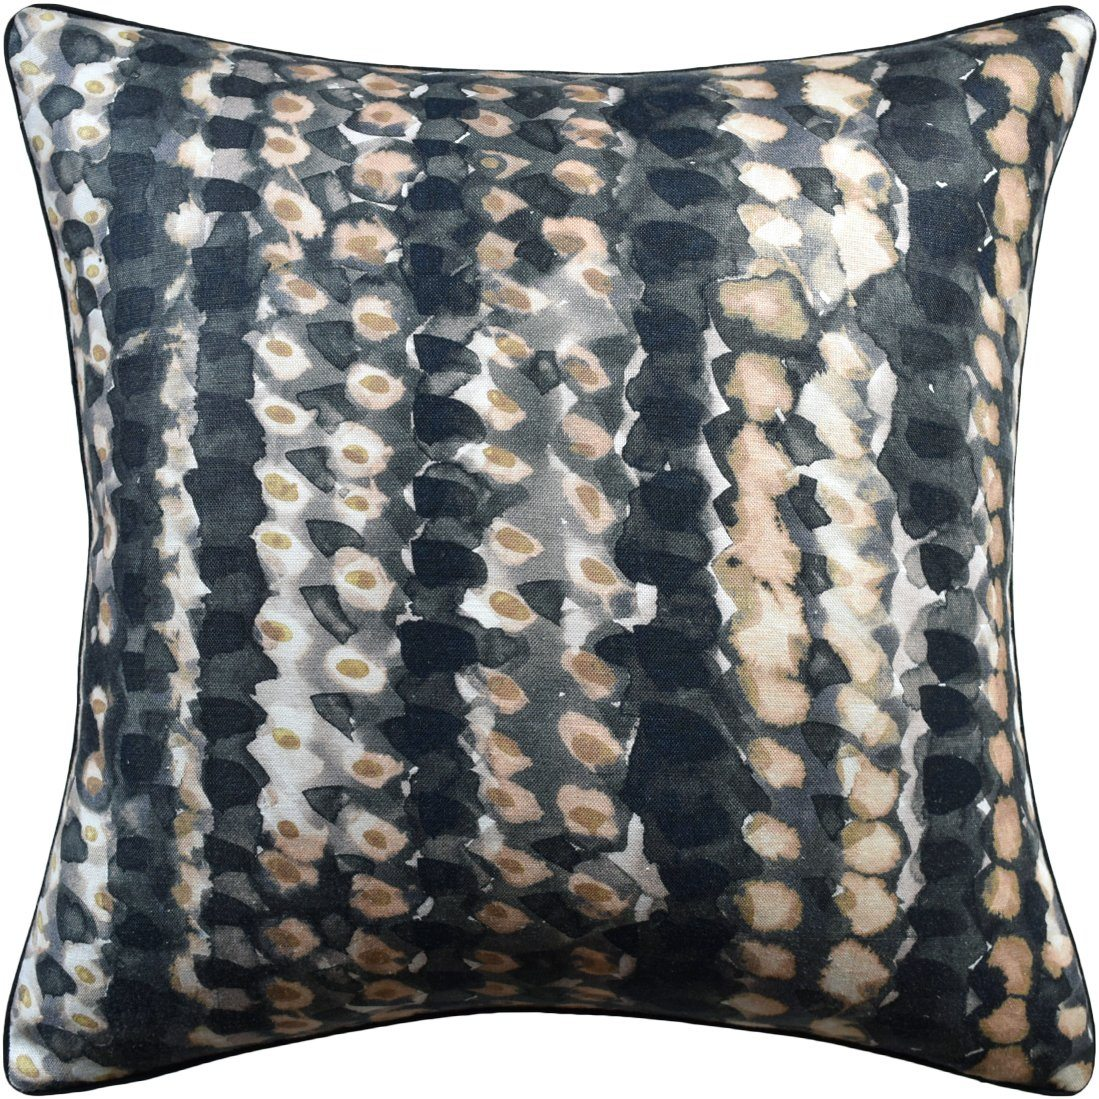 Old Cairo Nutmeg - Ryan Studio Pillow